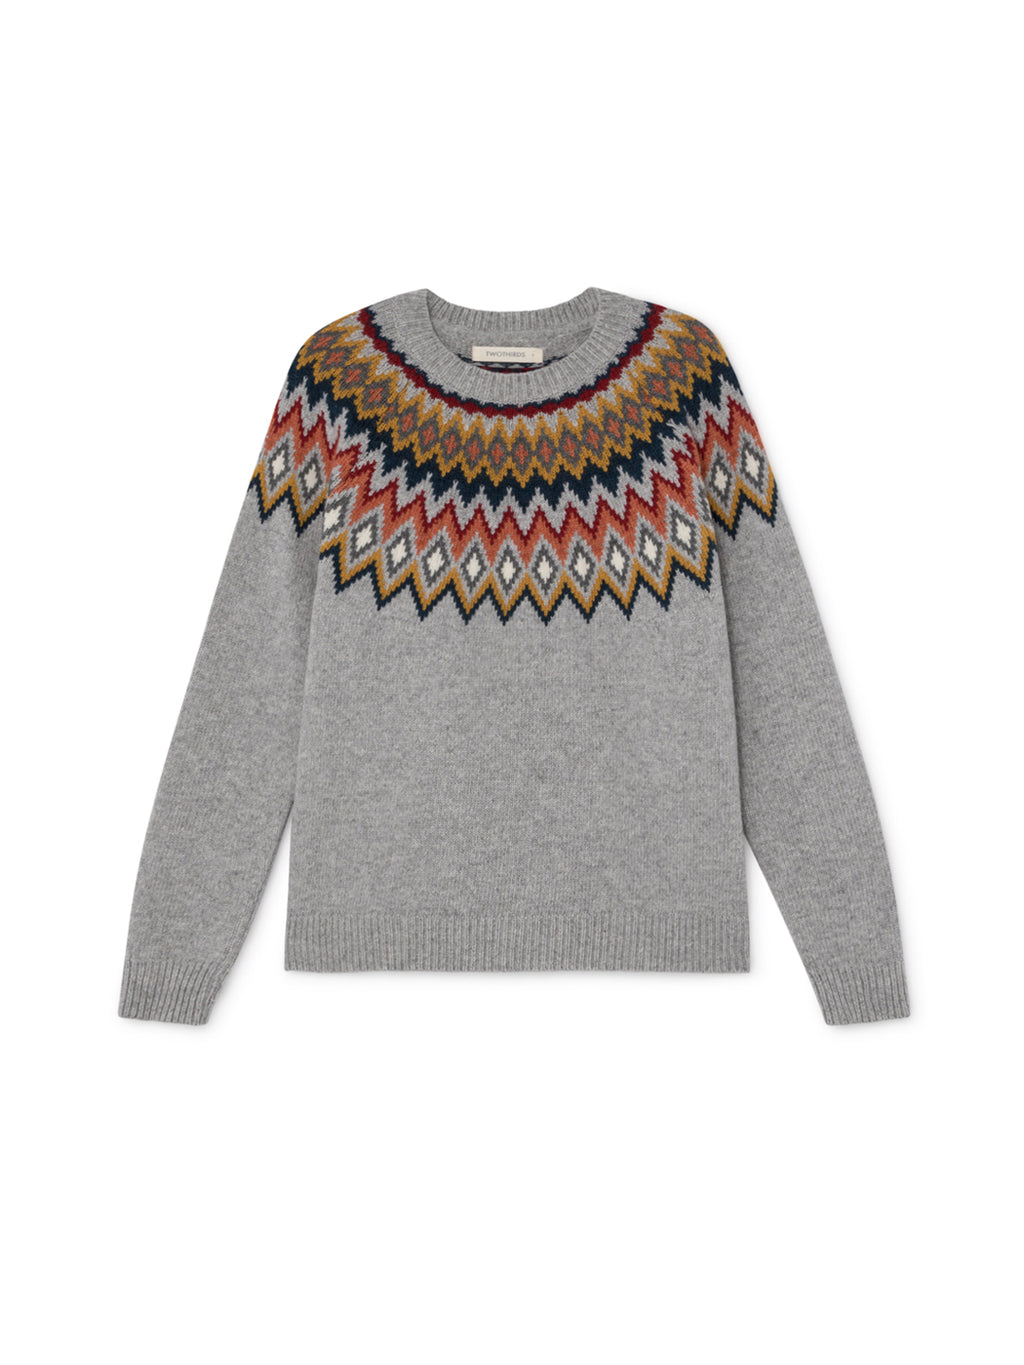 TWOTHIRDS Womens Knit: Centoleiras - Grey front